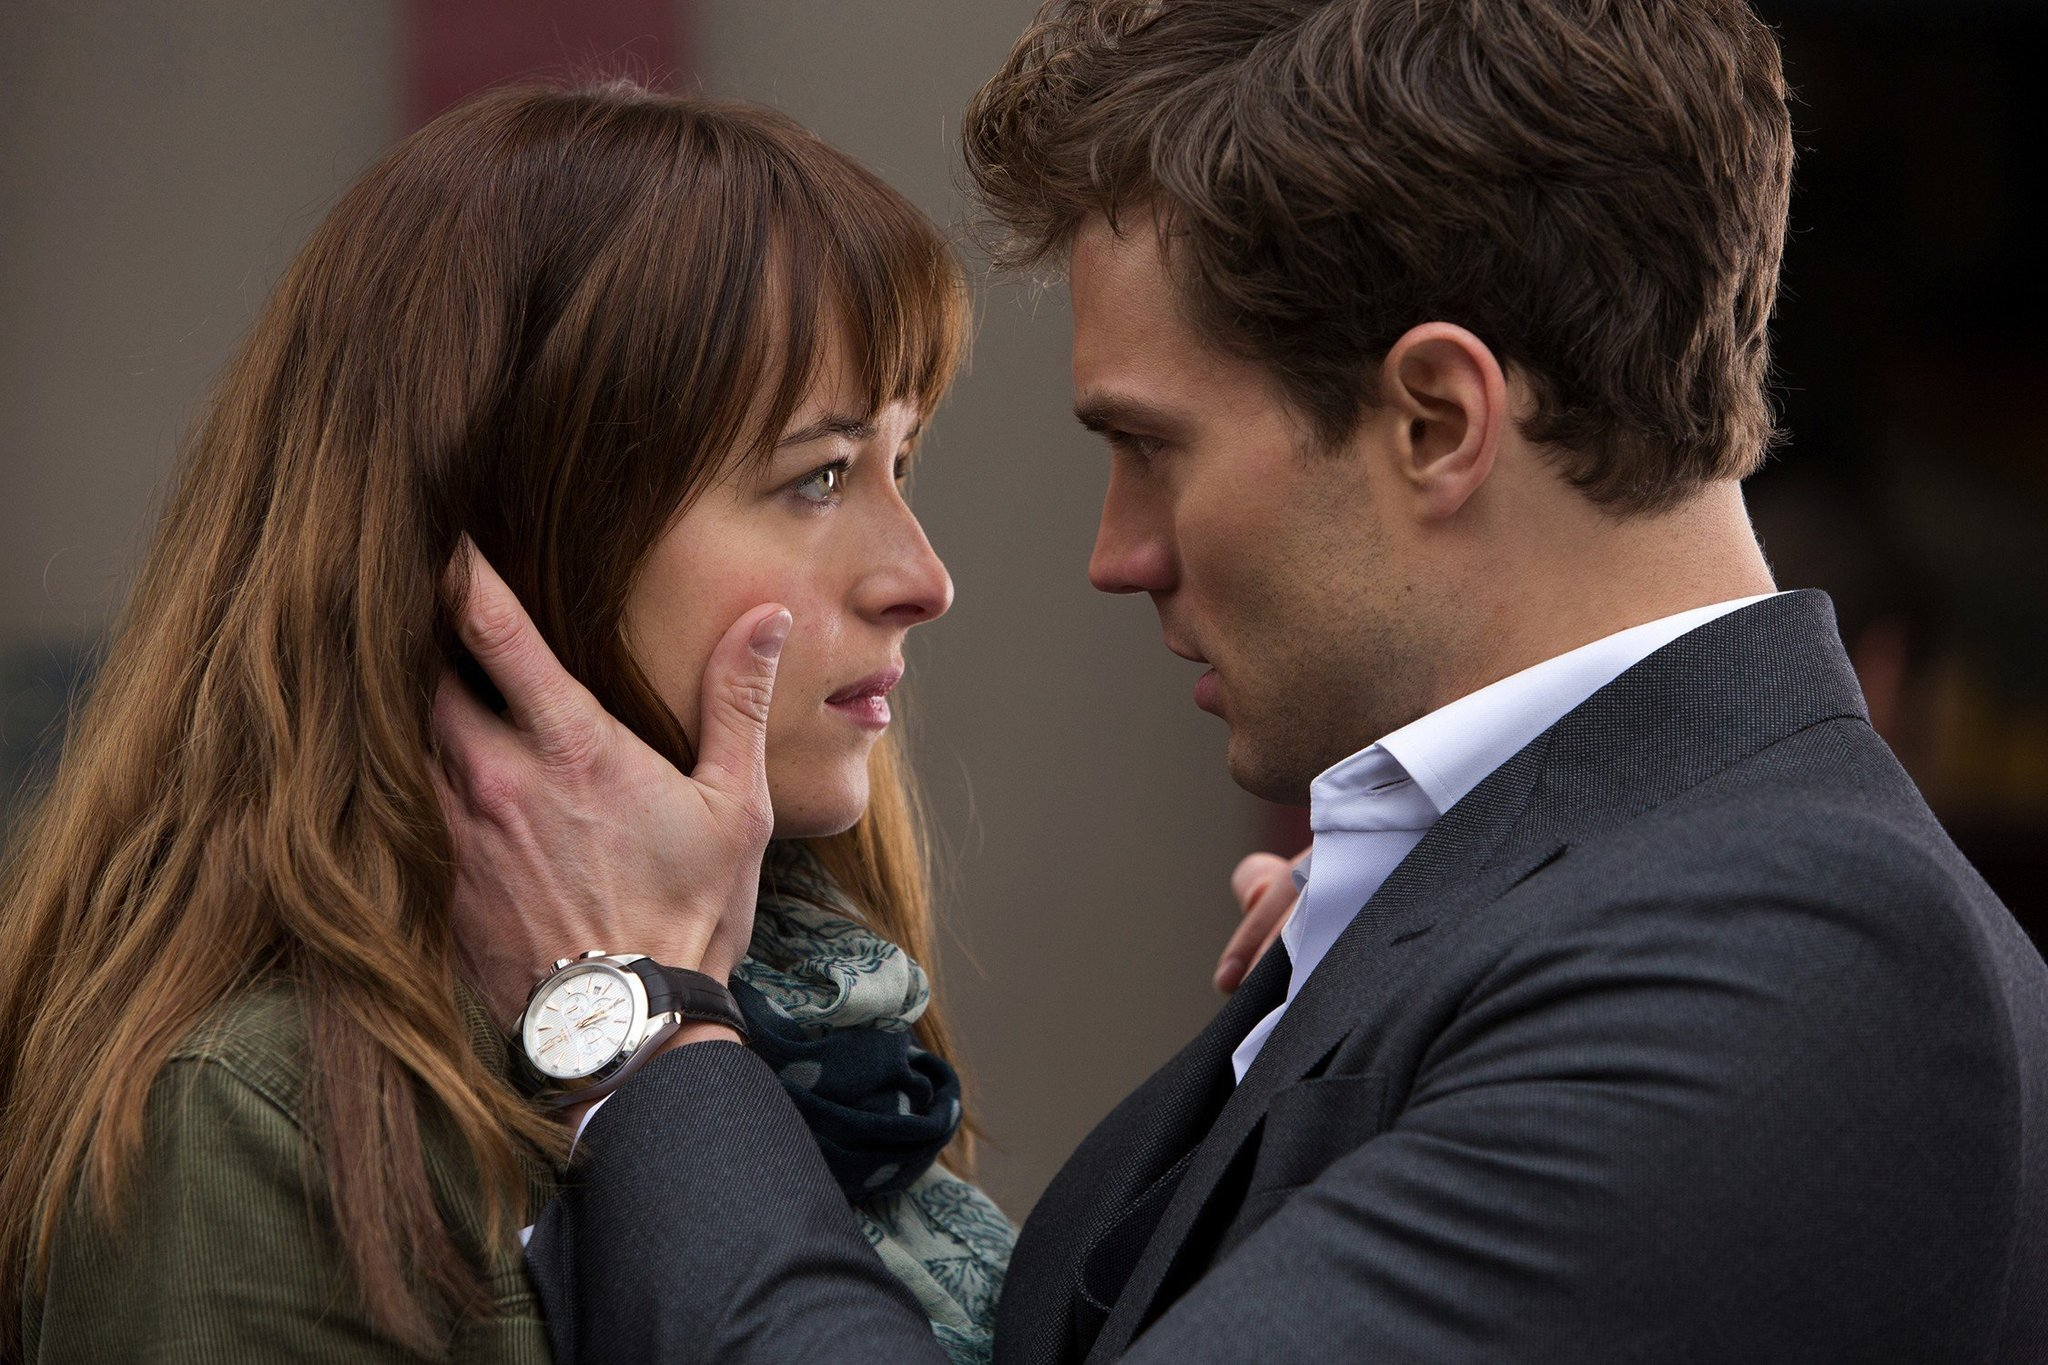 39 fifty shades of grey 39 leading ticket sales on fandango for Fifty shades og grey